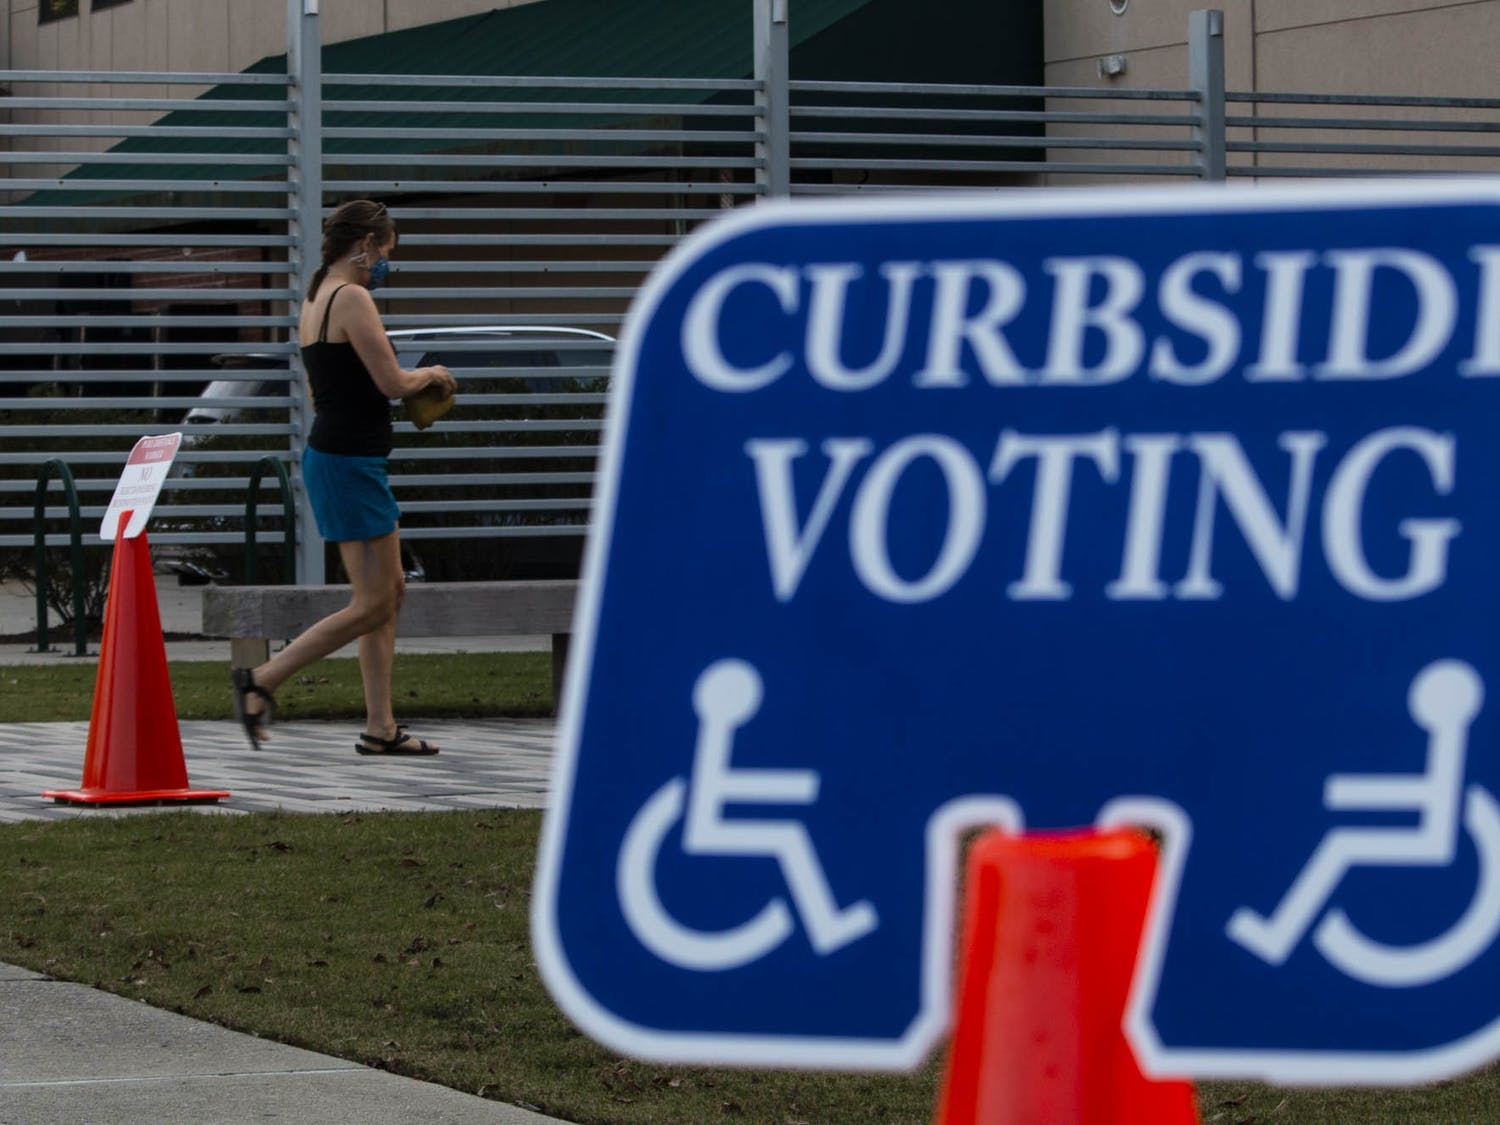 A voter walks towards the early voting site entrance at the University Mall on Thursday, Oct. 22, 2020.